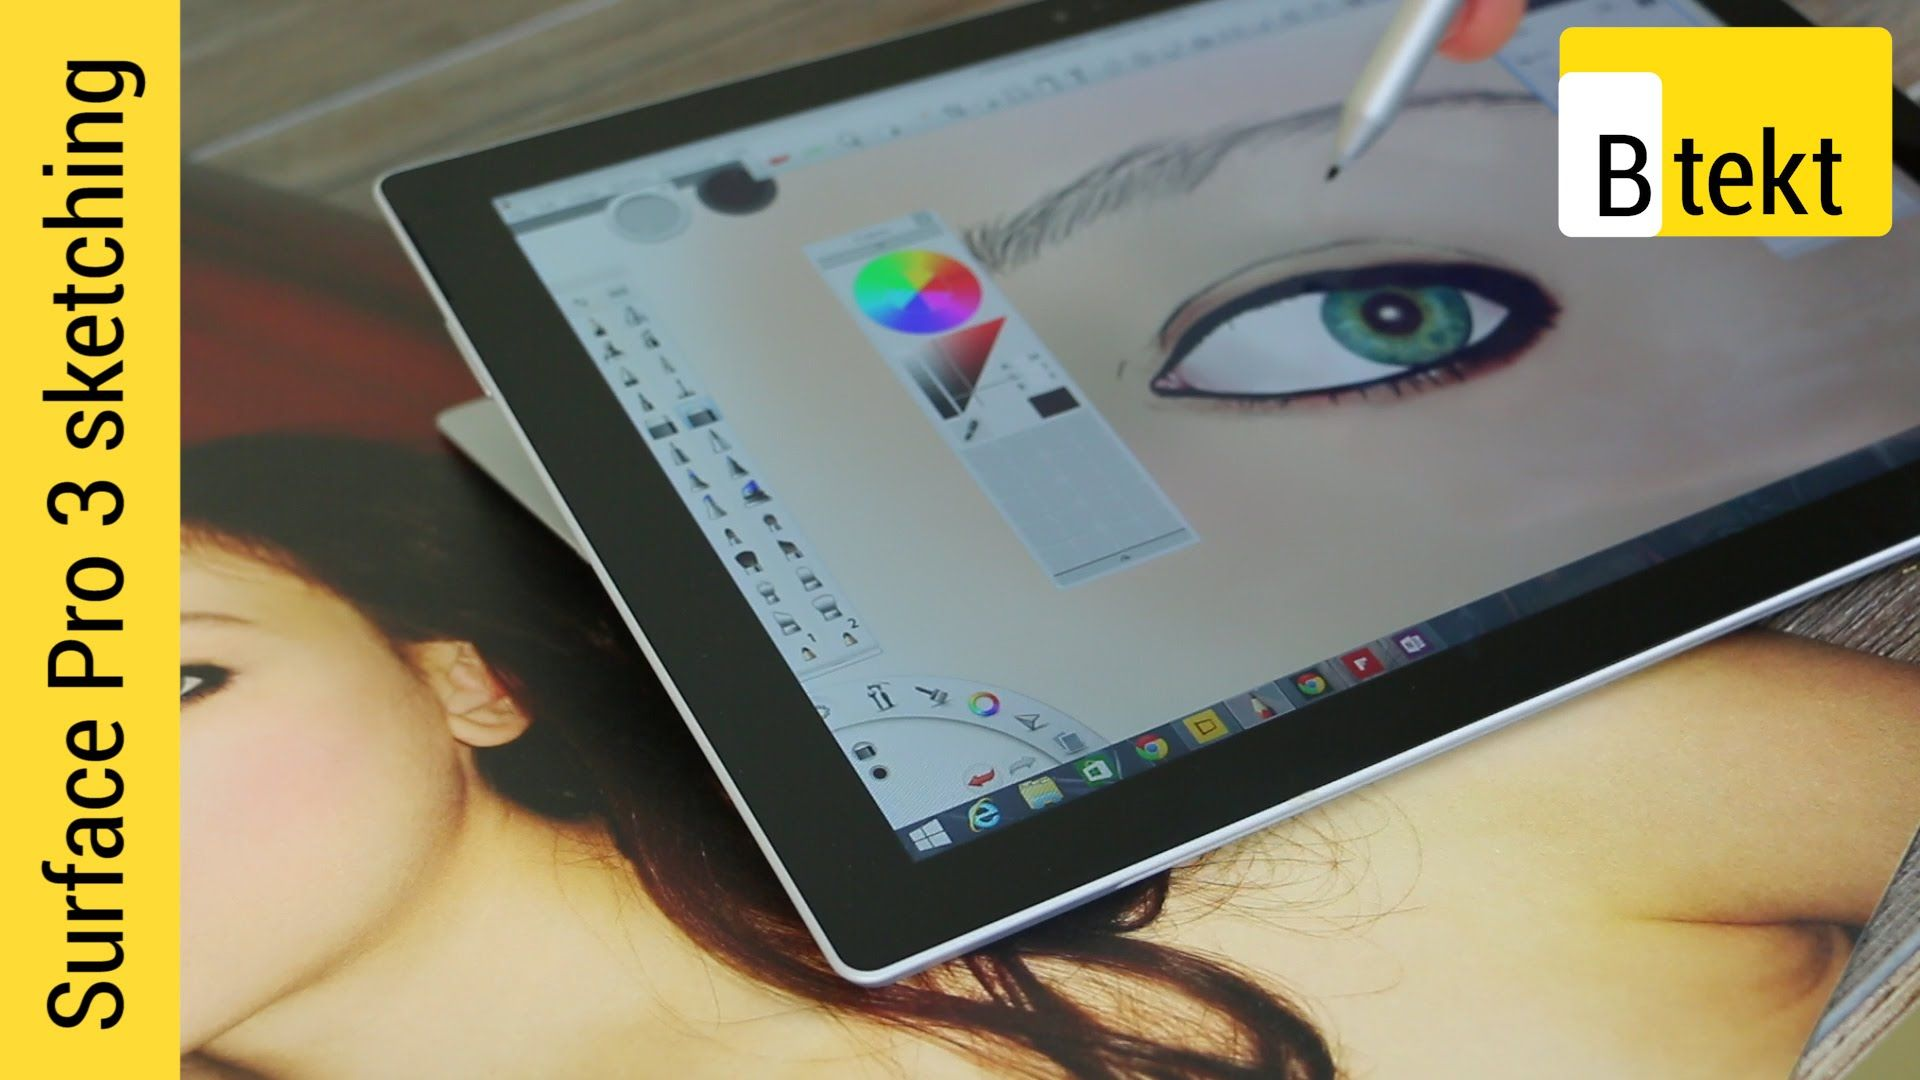 How to create grid in sketchbook pro - Drawing On The Surface Pro 3 Using Sketchbook Pro